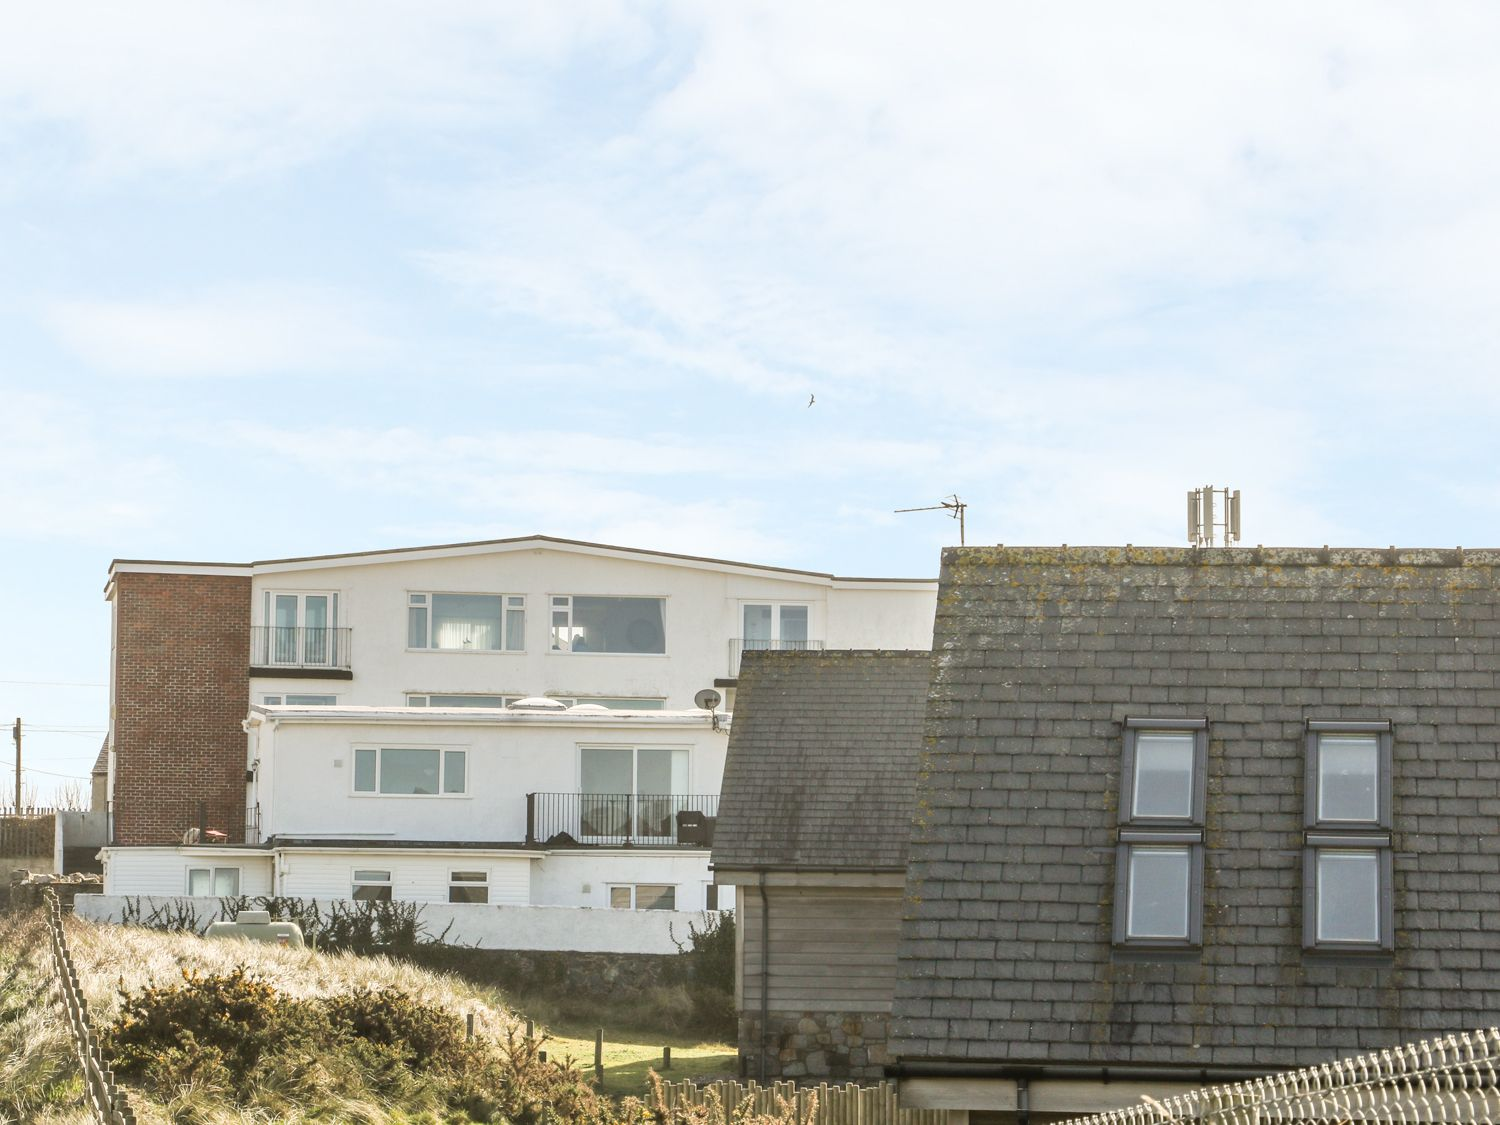 Flat 1 Bryn Colyn - Anglesey - 1002250 - photo 1